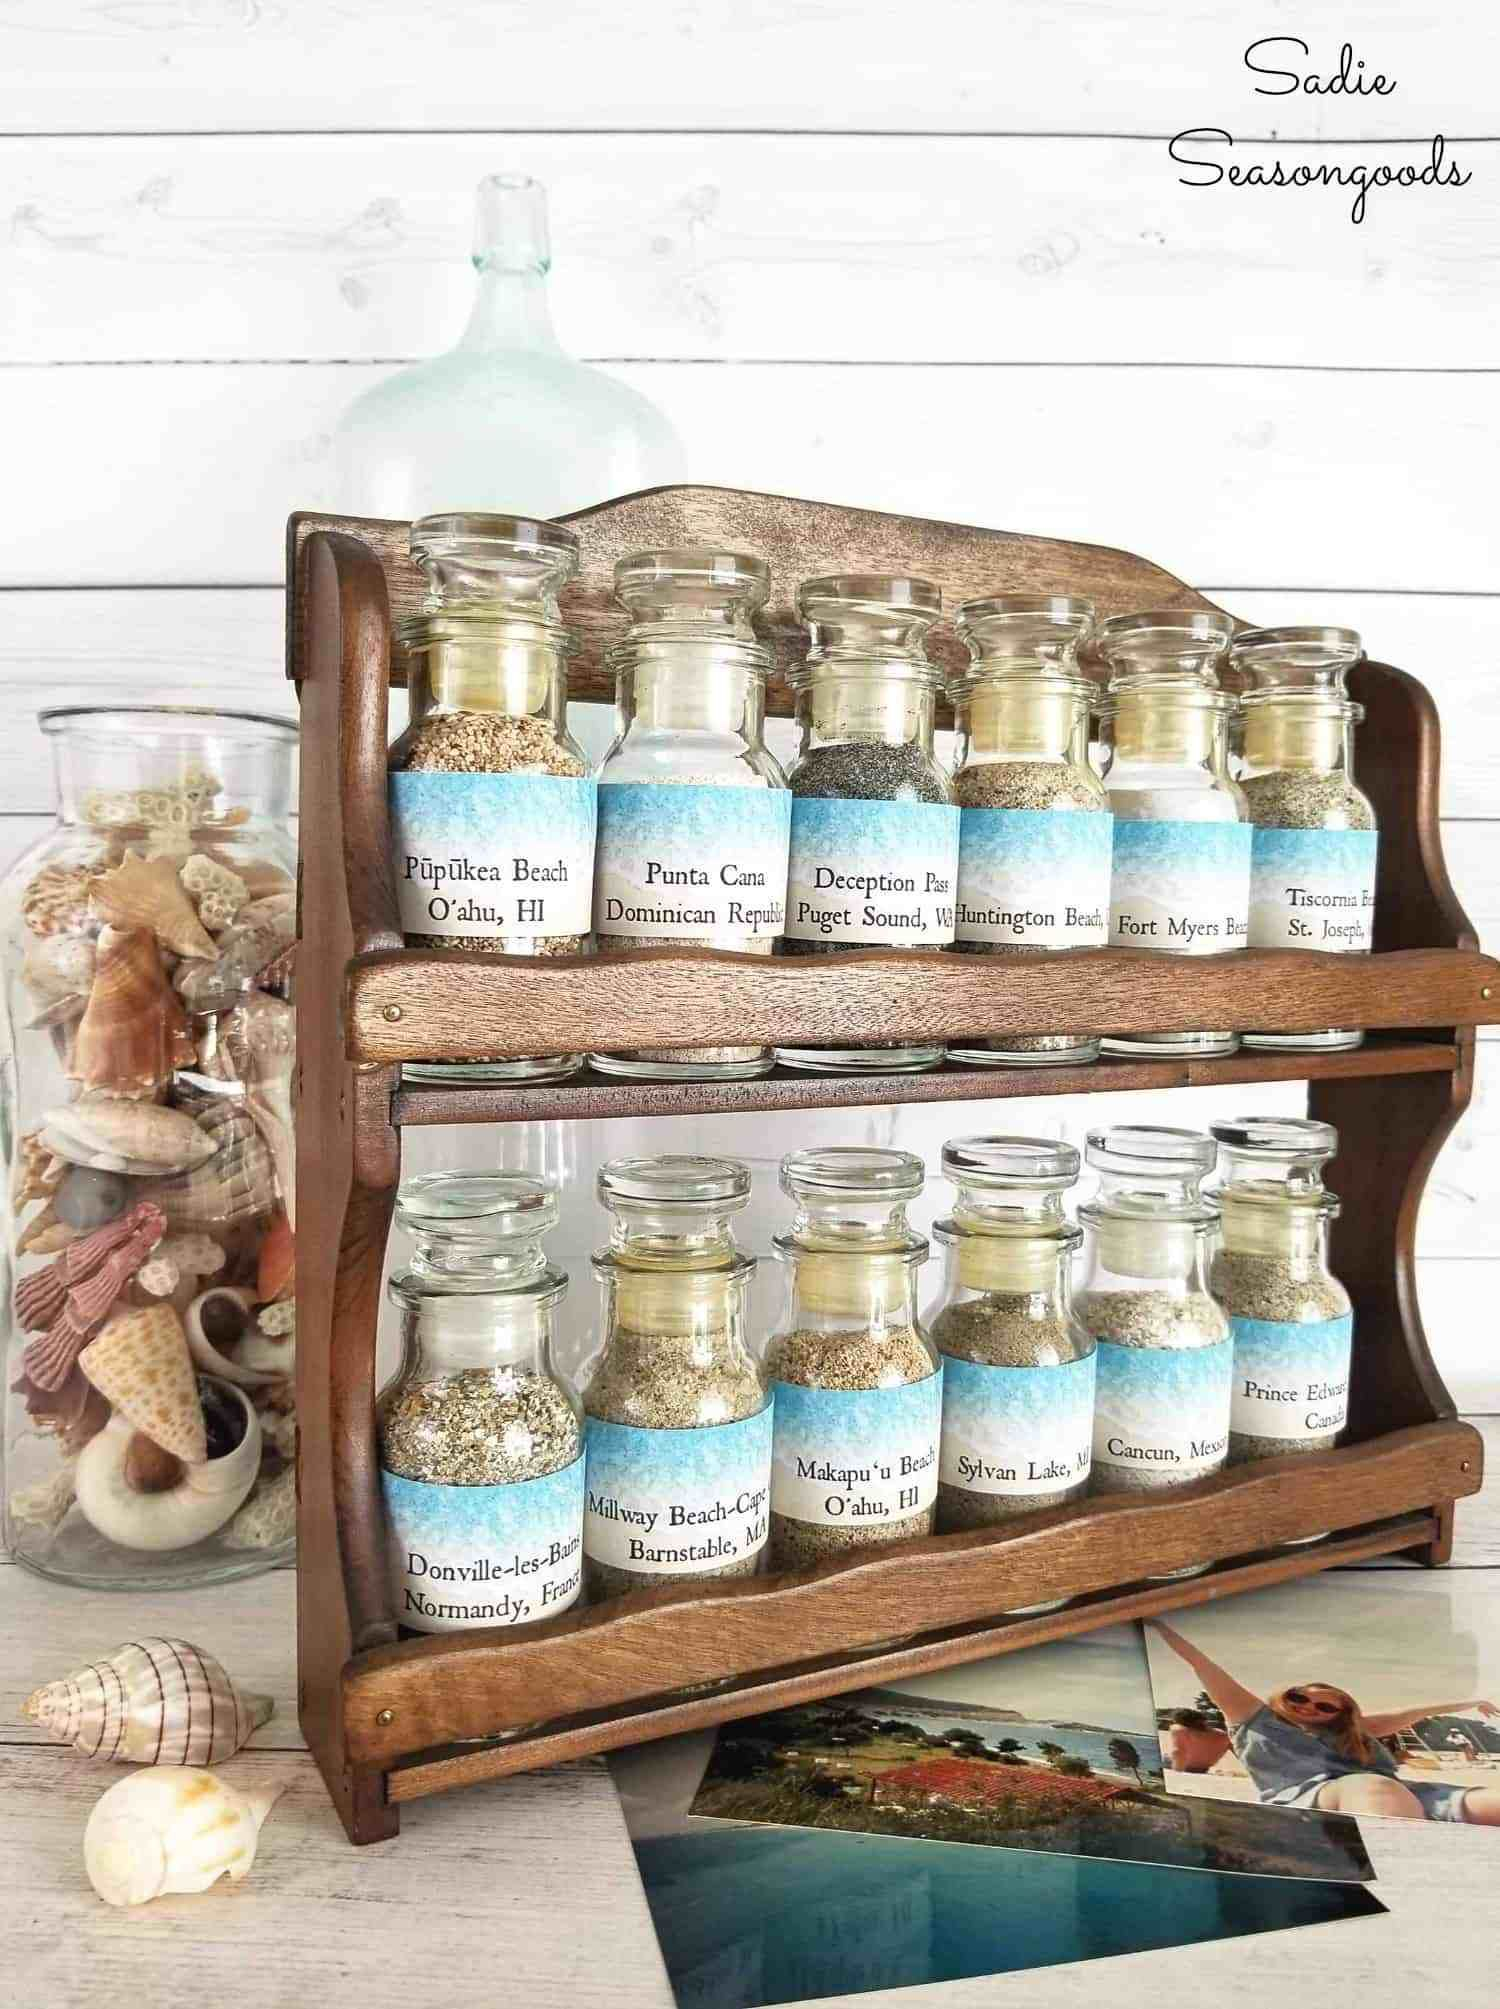 Upcycle A Vintage E Rack From The Thrift Into Display For Your Beach Sand Collection With This Amazing Repurposing Idea Sa Seasongoods